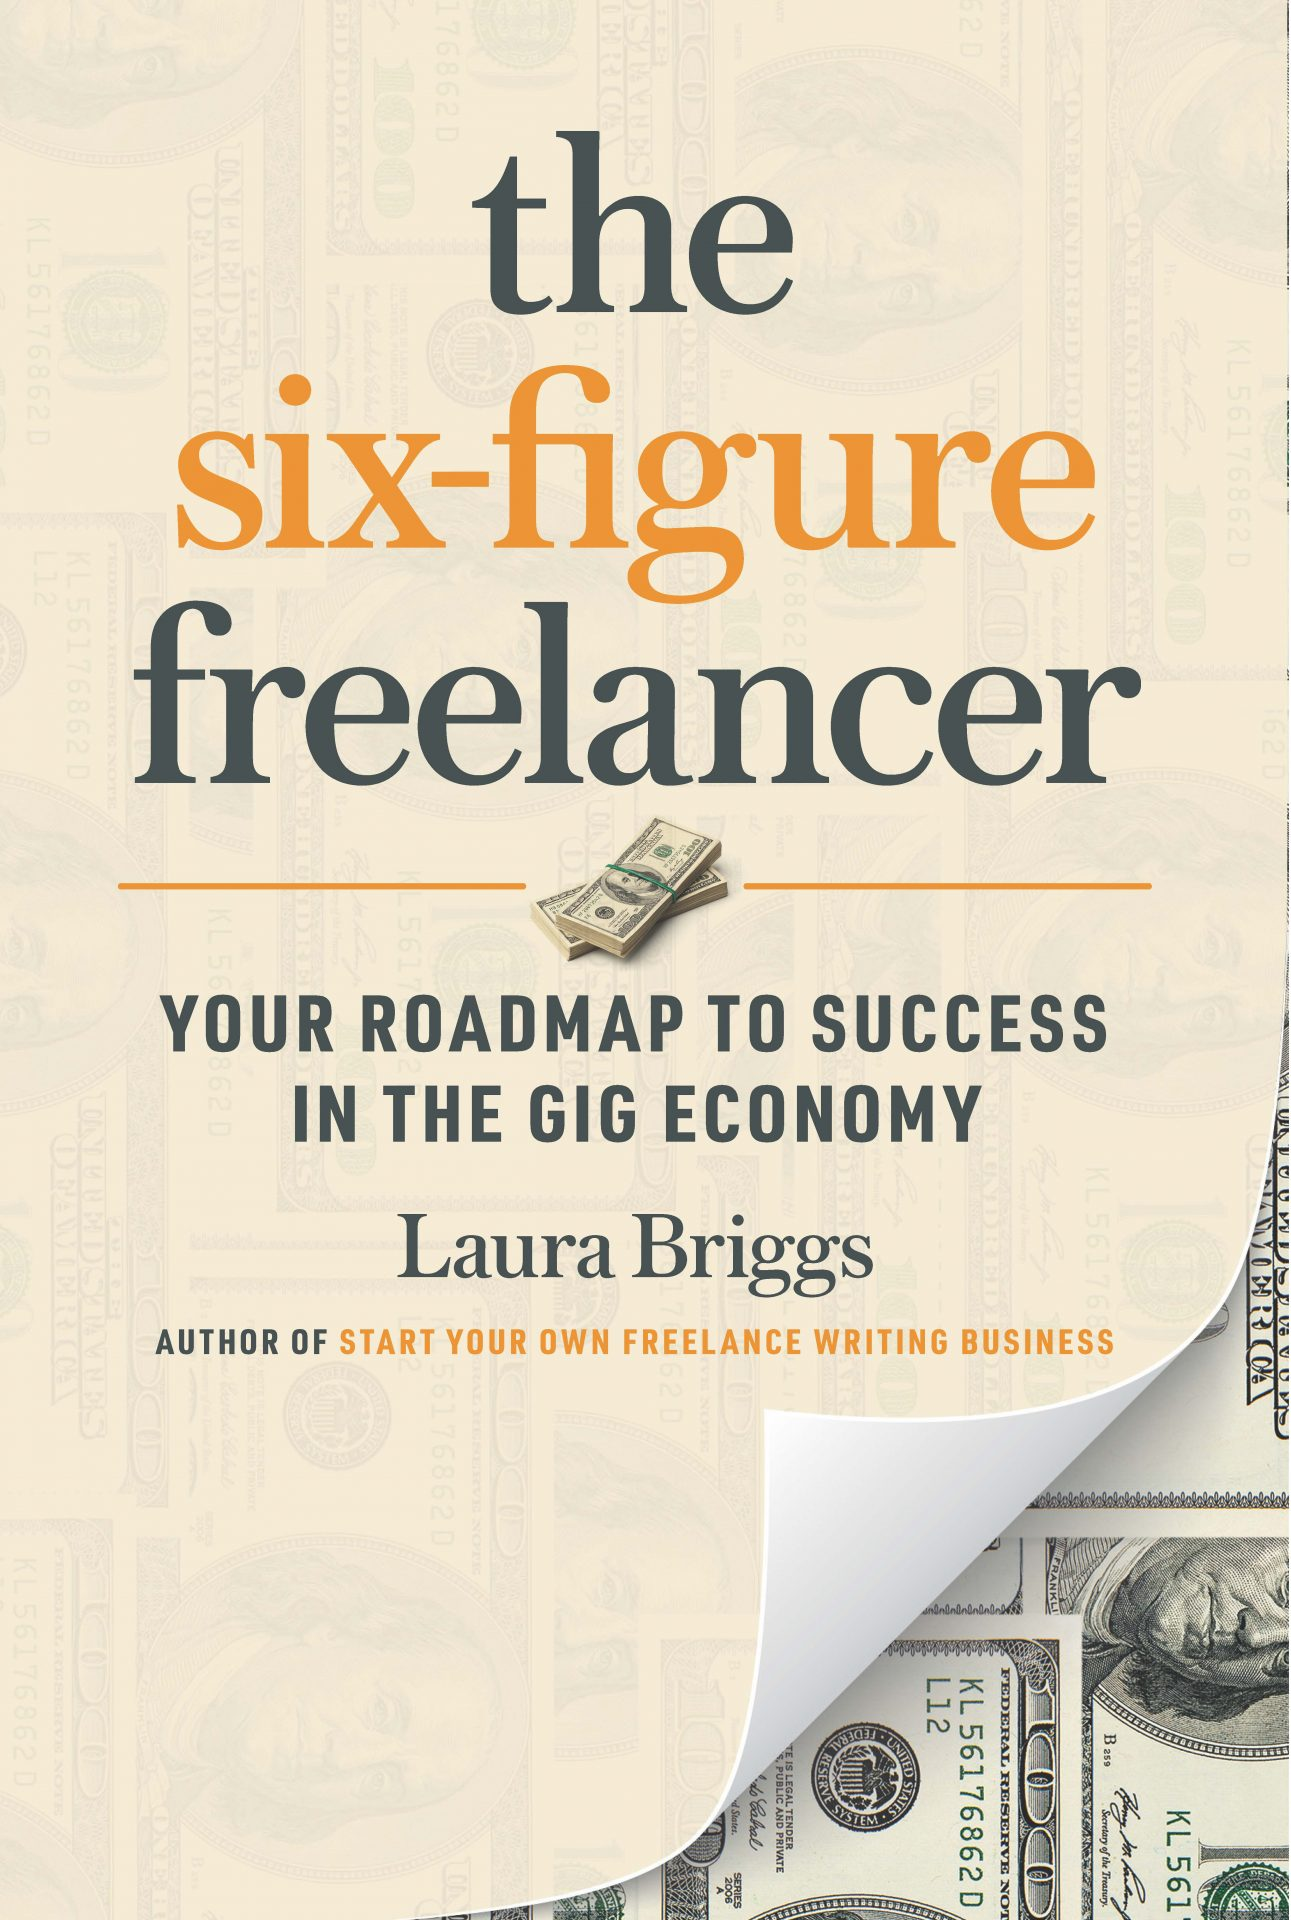 The Six-Figure Freelancer by Laura Briggs at MilitaryFamilyBooks.com